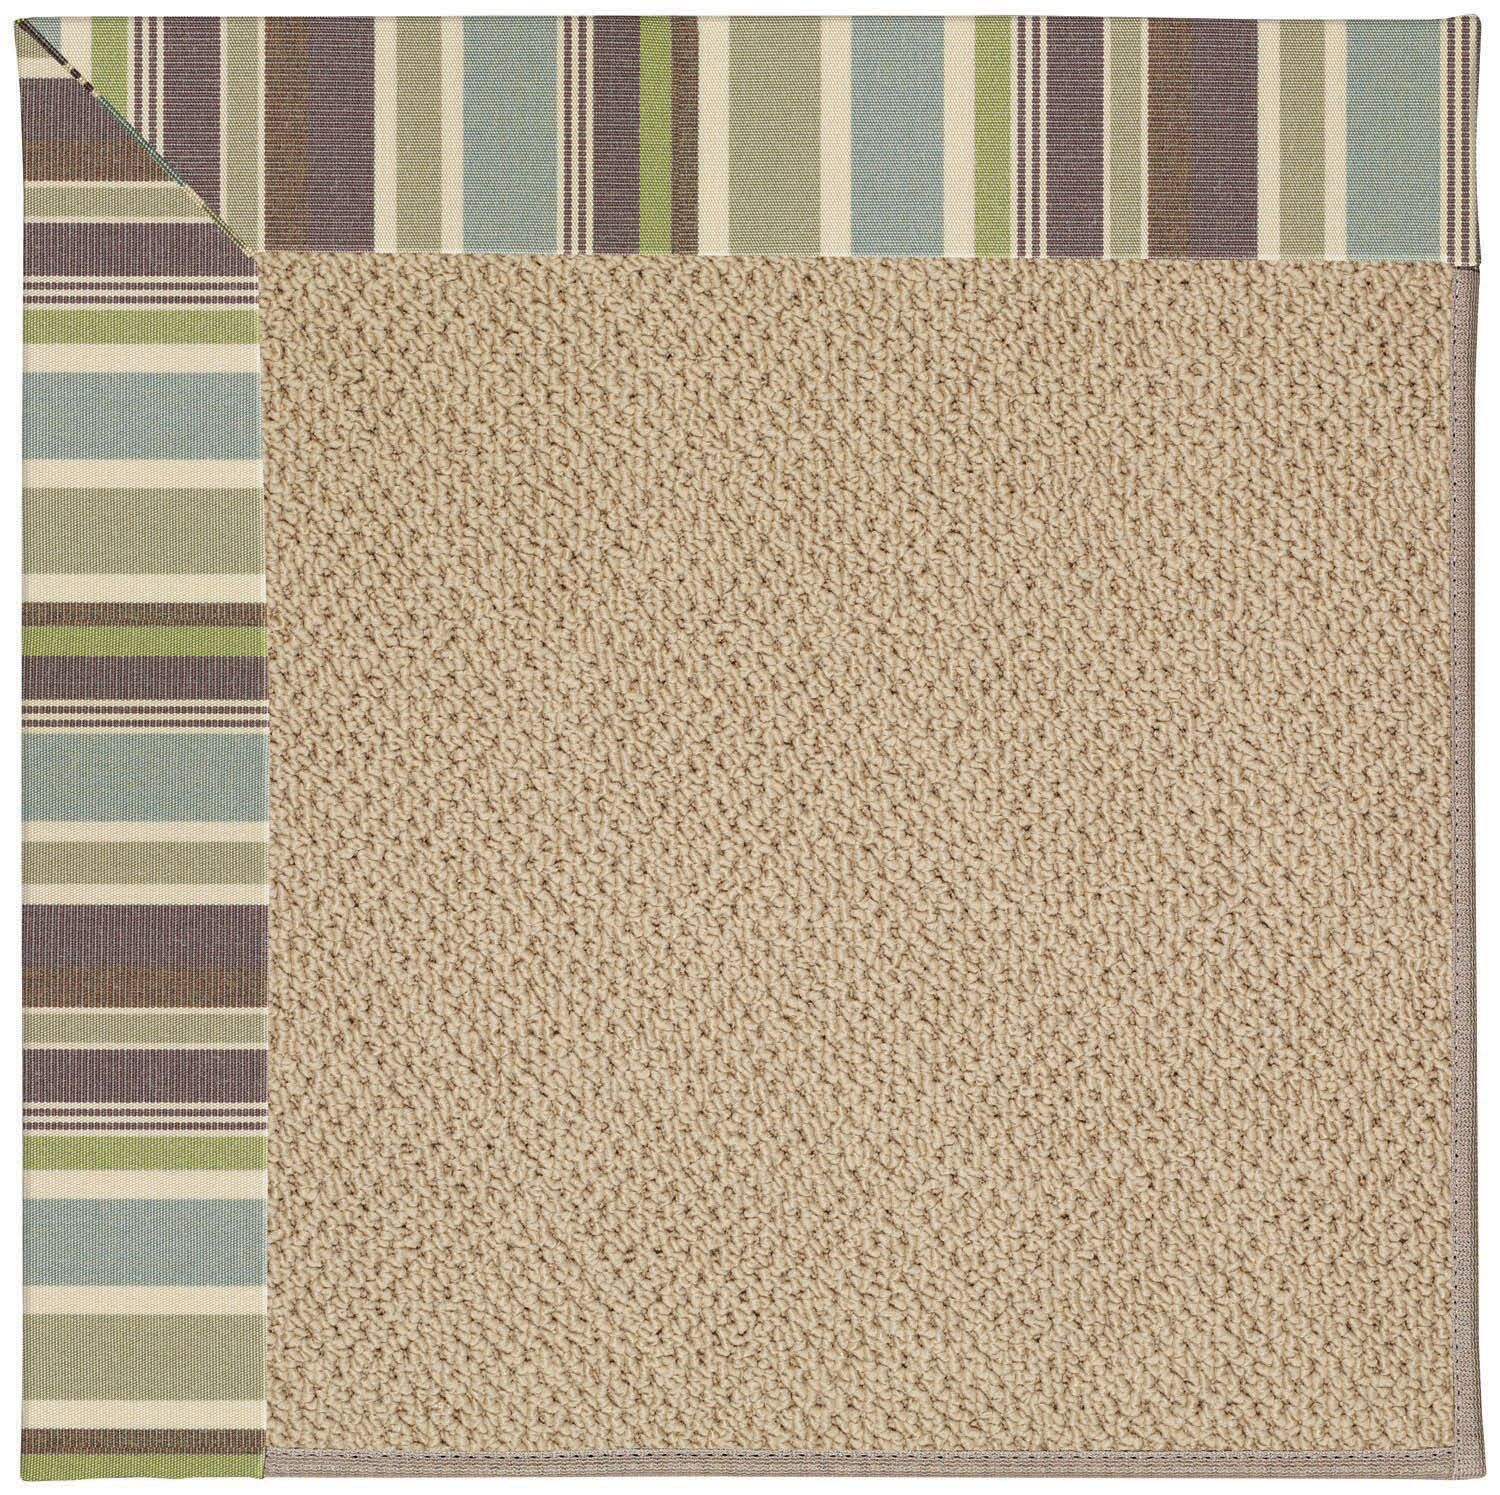 Lisle Machine Tufted Multi-colored/Beige Indoor/Outdoor Area Rug Rug Size: Rectangle 12' x 15'